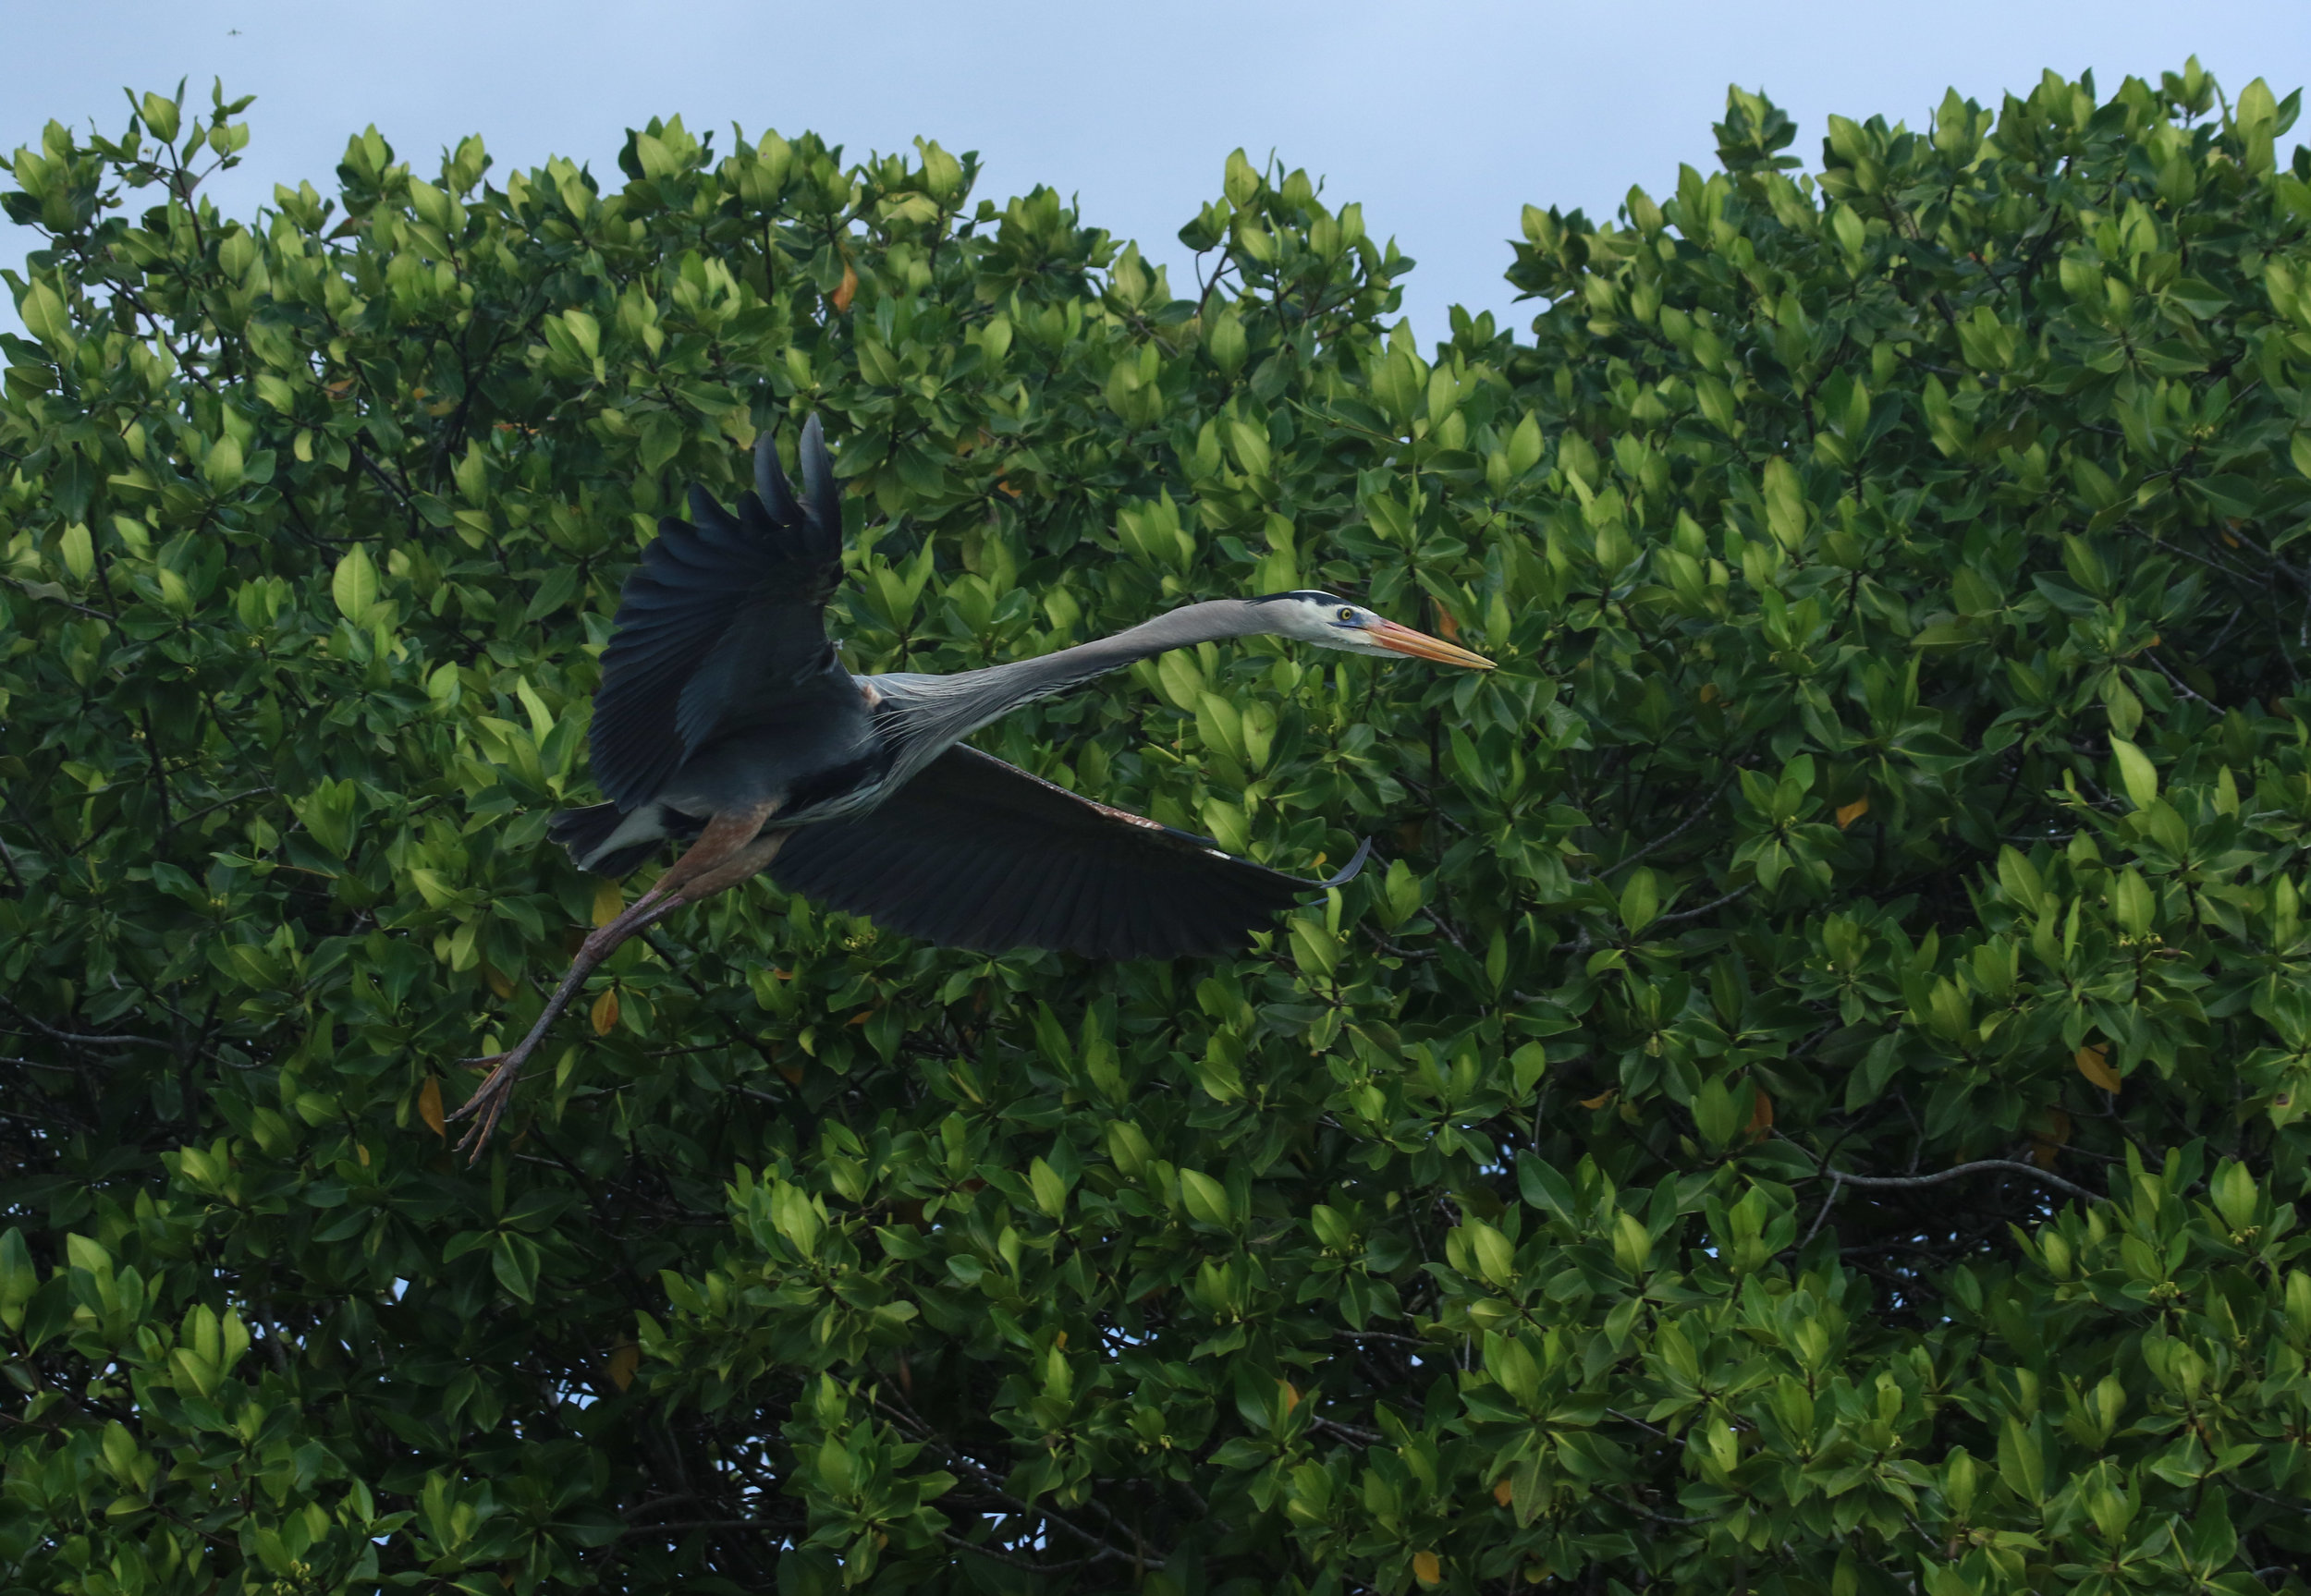 Blue Heron Flying Galapagos Islands Ecuador by Millie Kerr -1.jpg